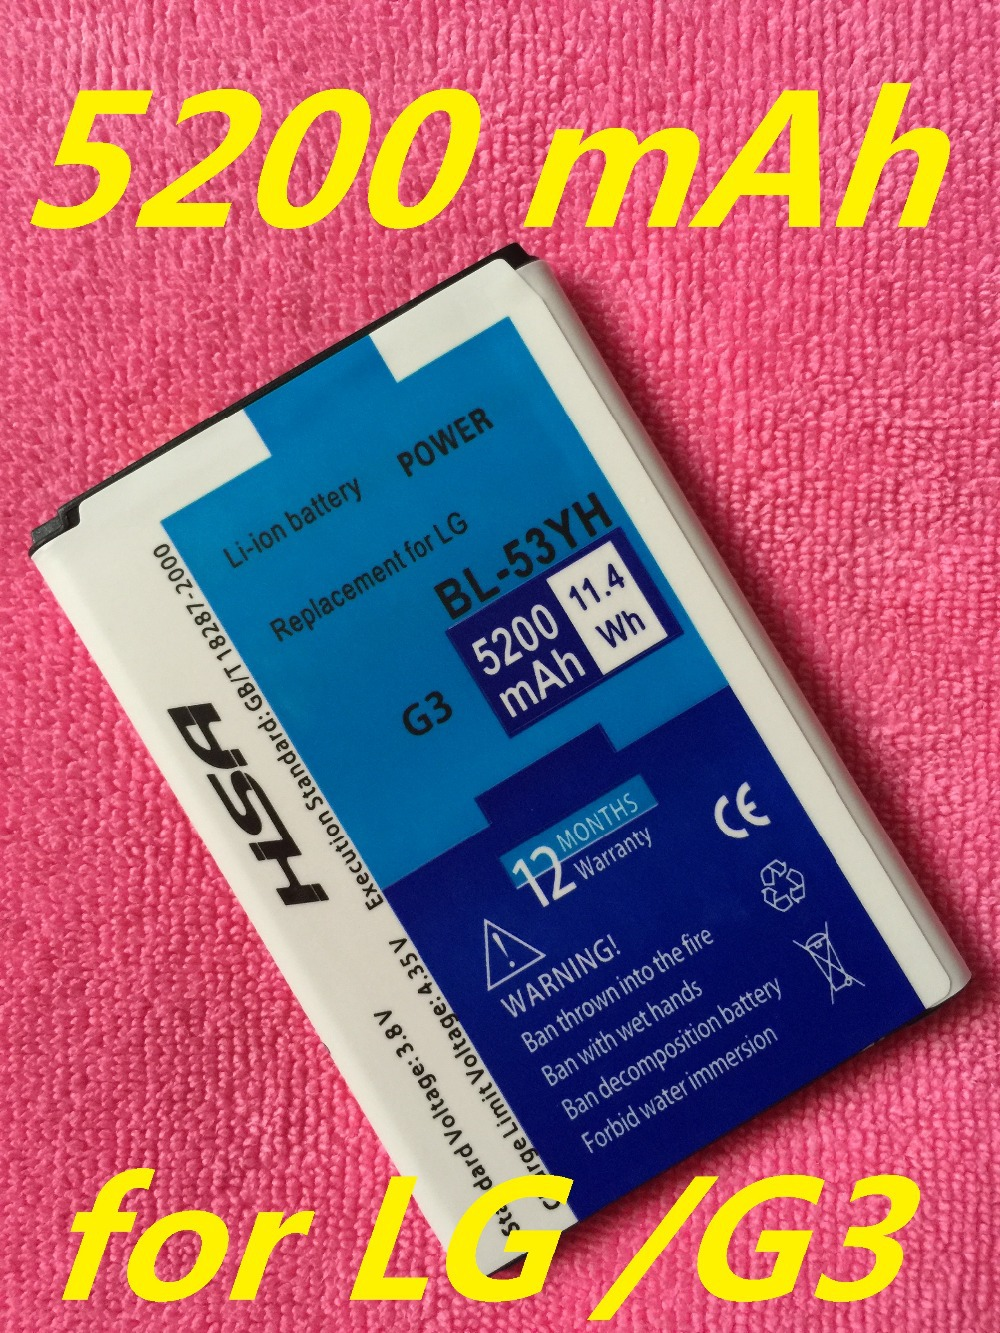 Free shipping 3.8V 5200mAh replacement BL-53YH Battery For LG G3 D858 D855 D857 D859 D850 F400 F460 F470 D830 D851 VS985 Phone(China (Mainland))